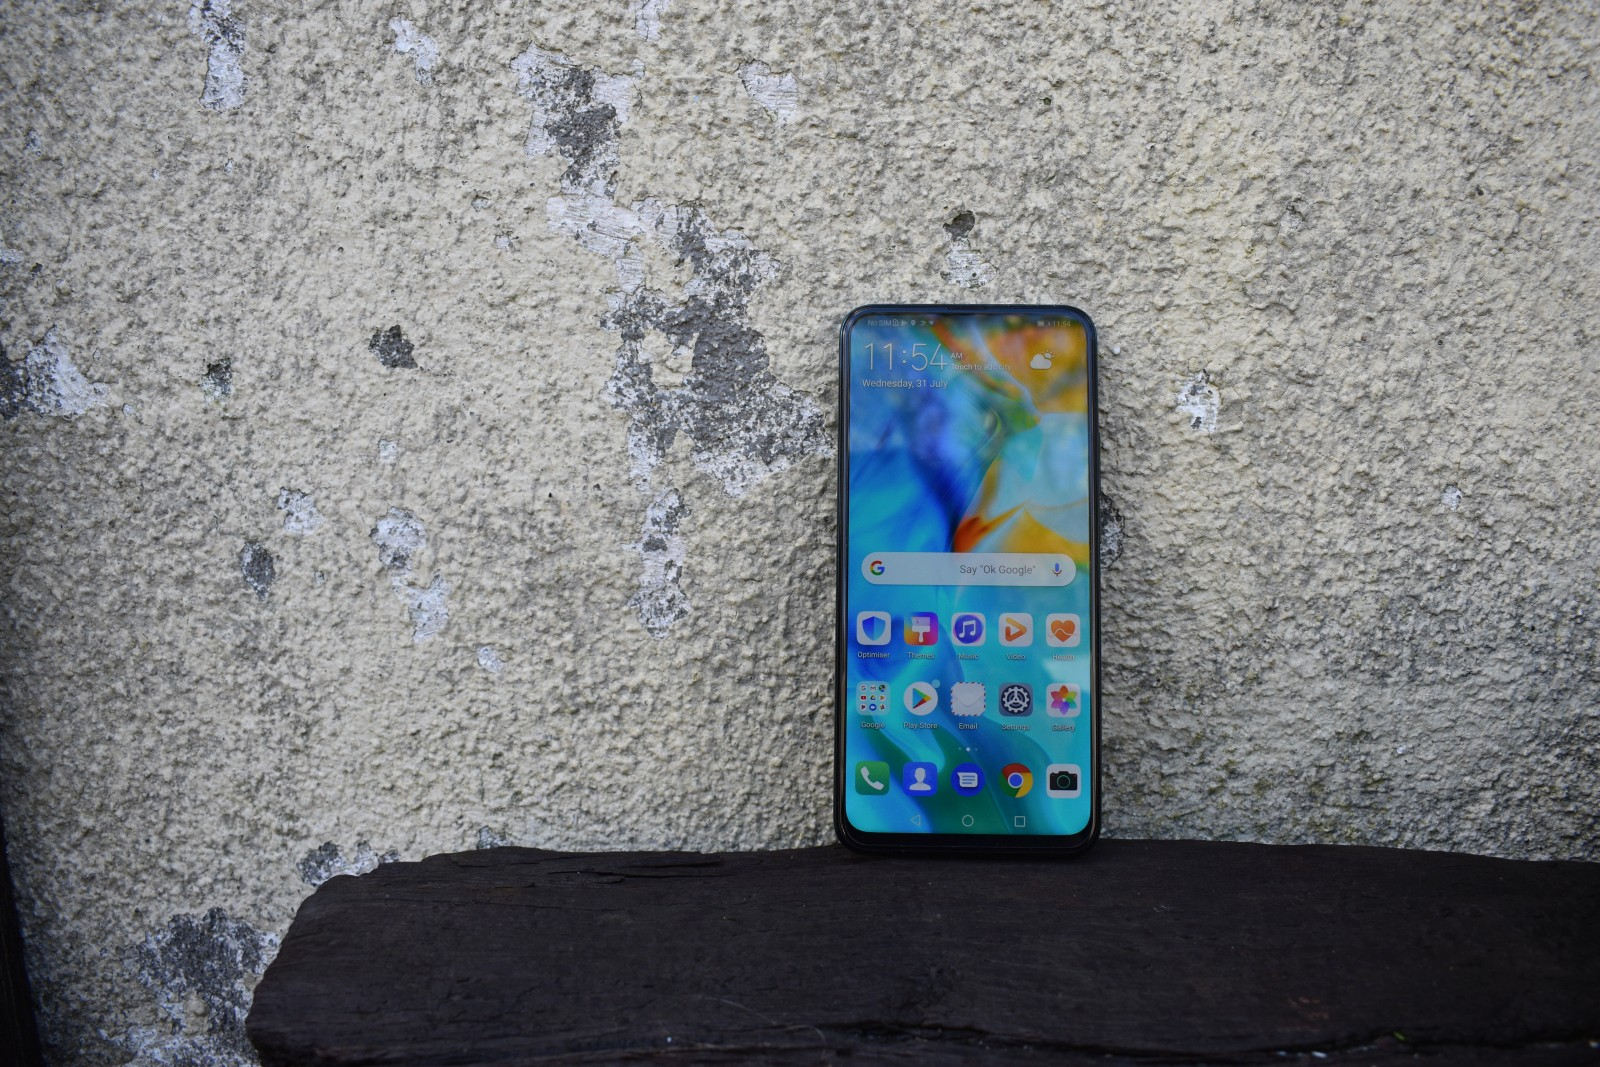 Pictures: Huawei's pop-up camera flaunting Y9 Prime 2019 is